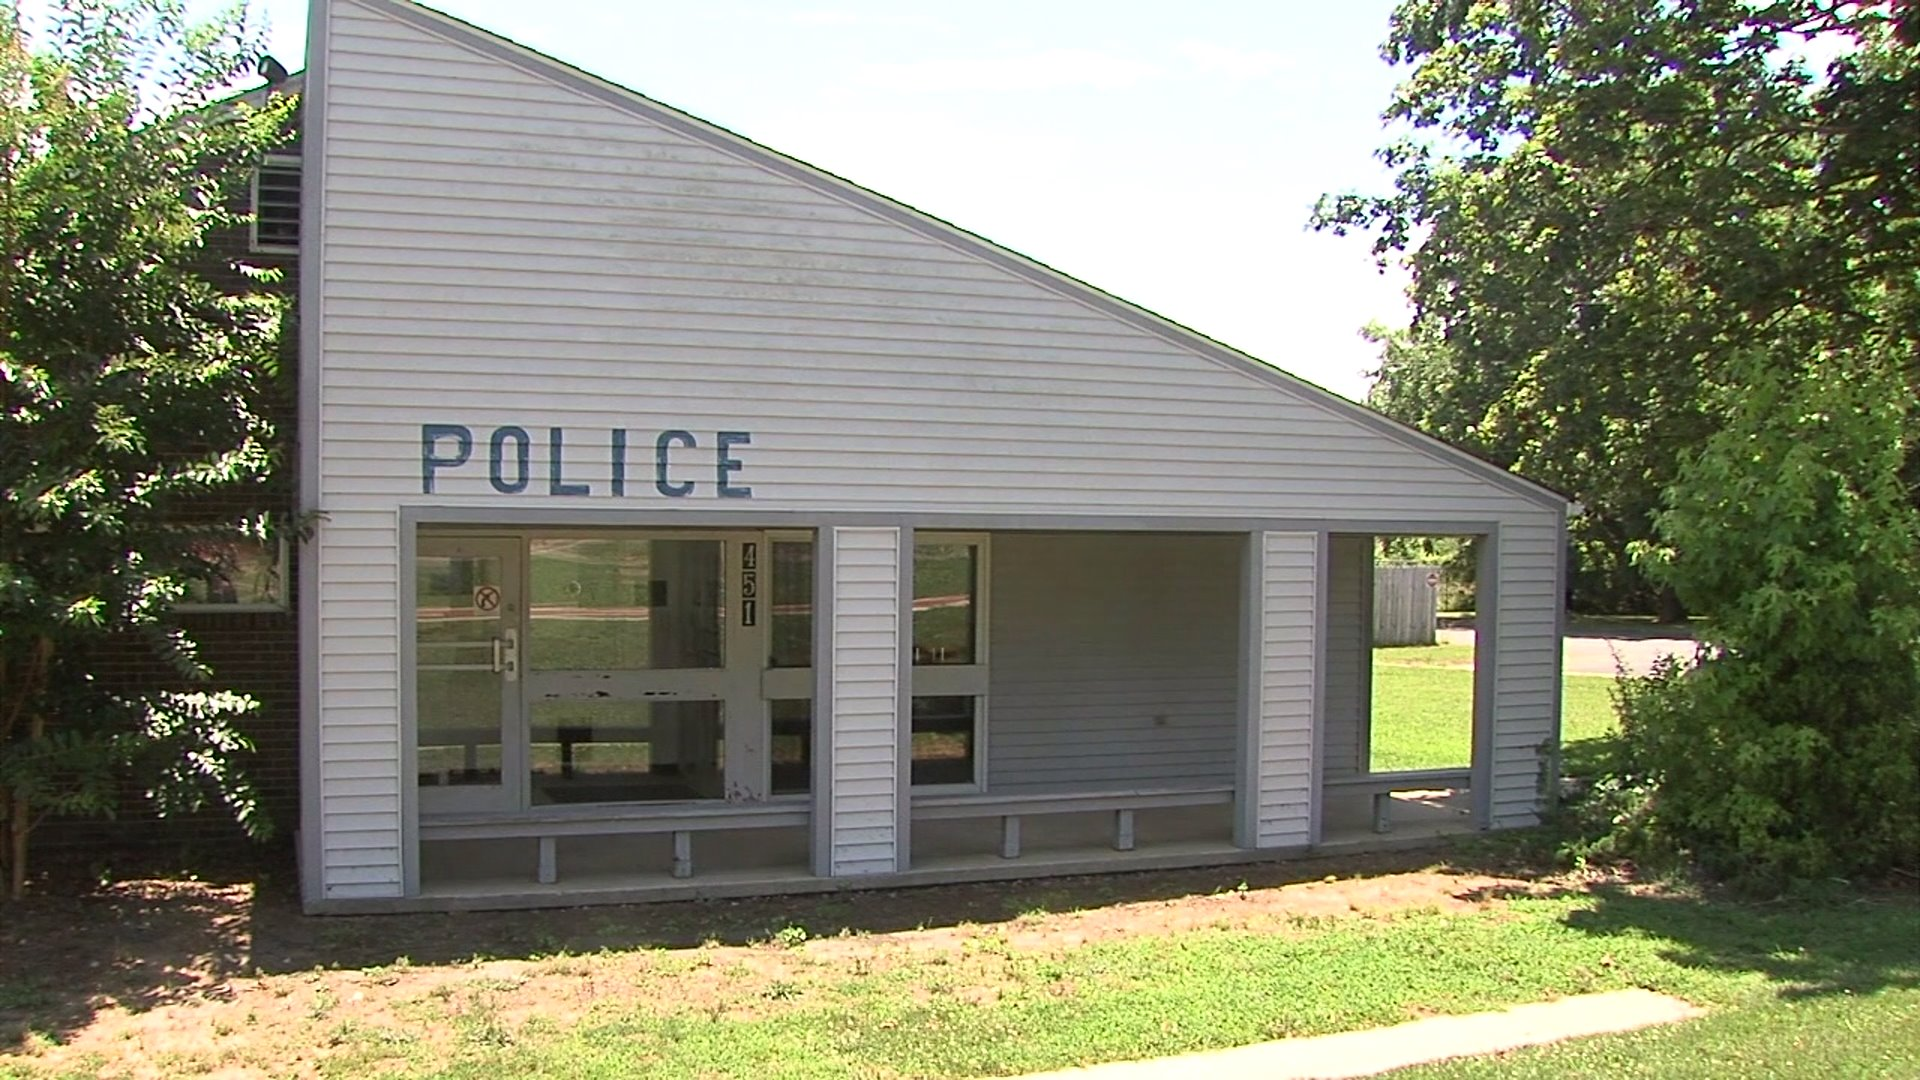 Debate continues over state of Liberty police station